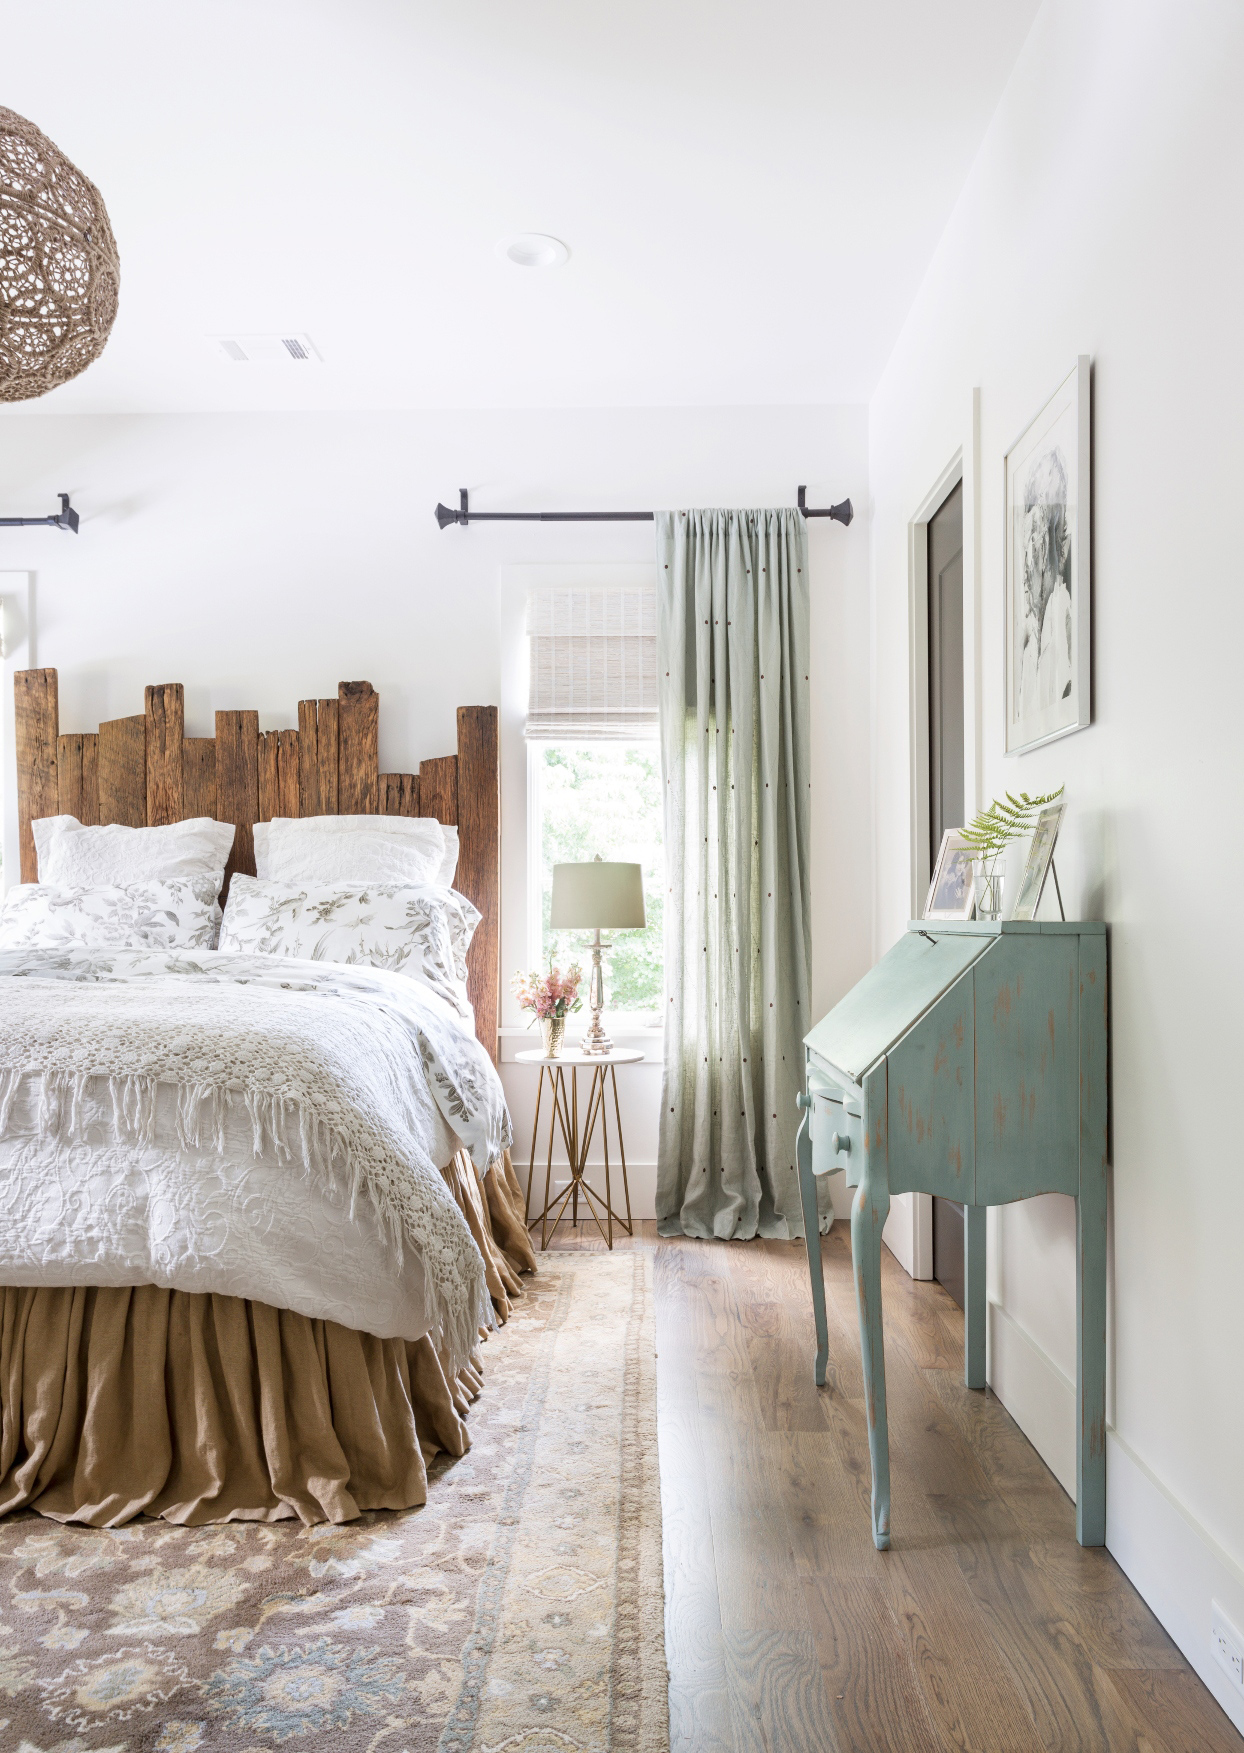 white and sea foam bedroom with wooden accents